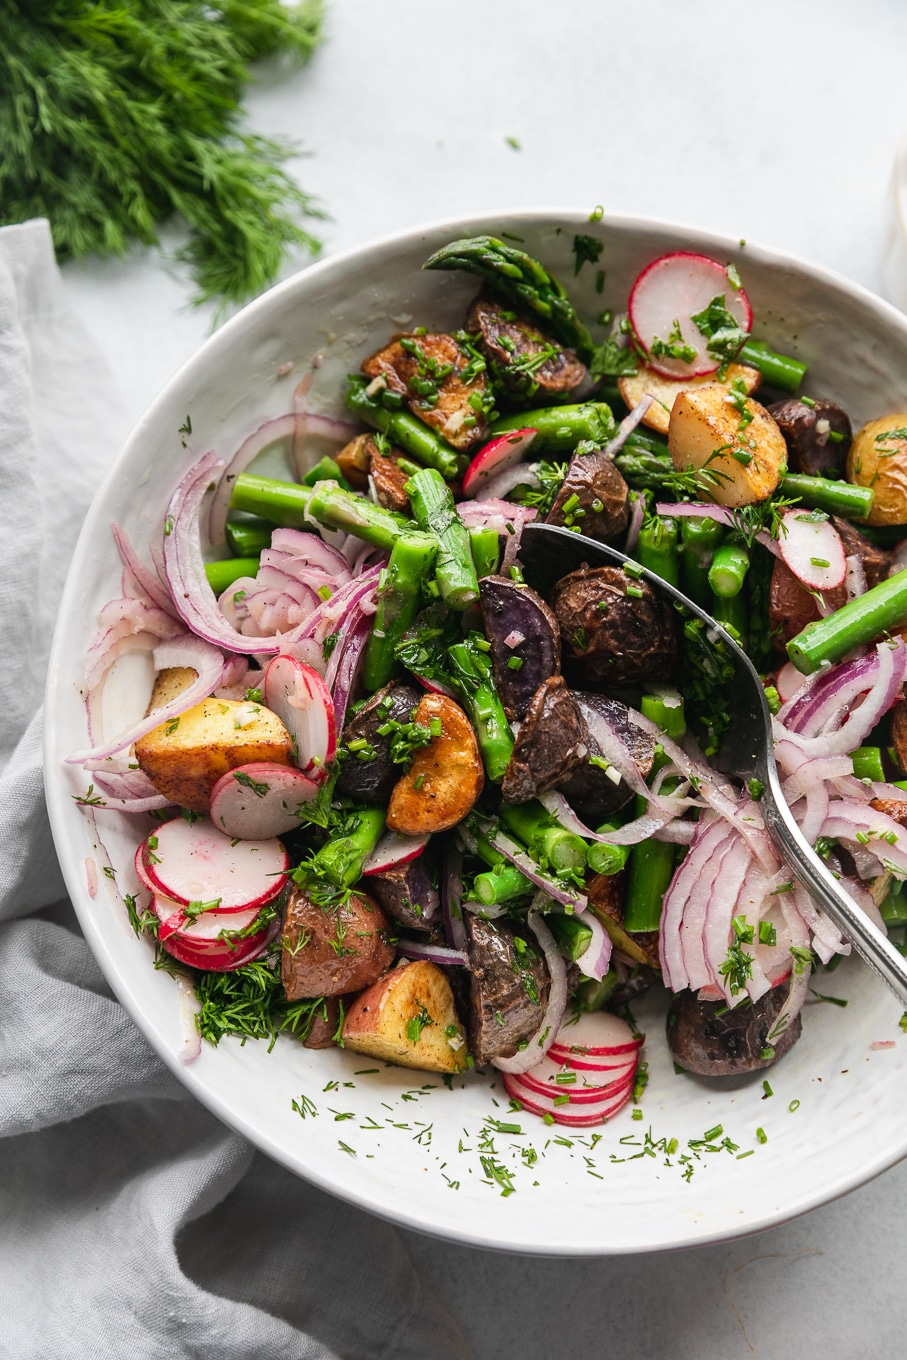 Overhead close up shot of a bowl filled with roasted potato salad with asparagus, sliced radishes, red onion, and fresh herbs being tossed with a silver spoon